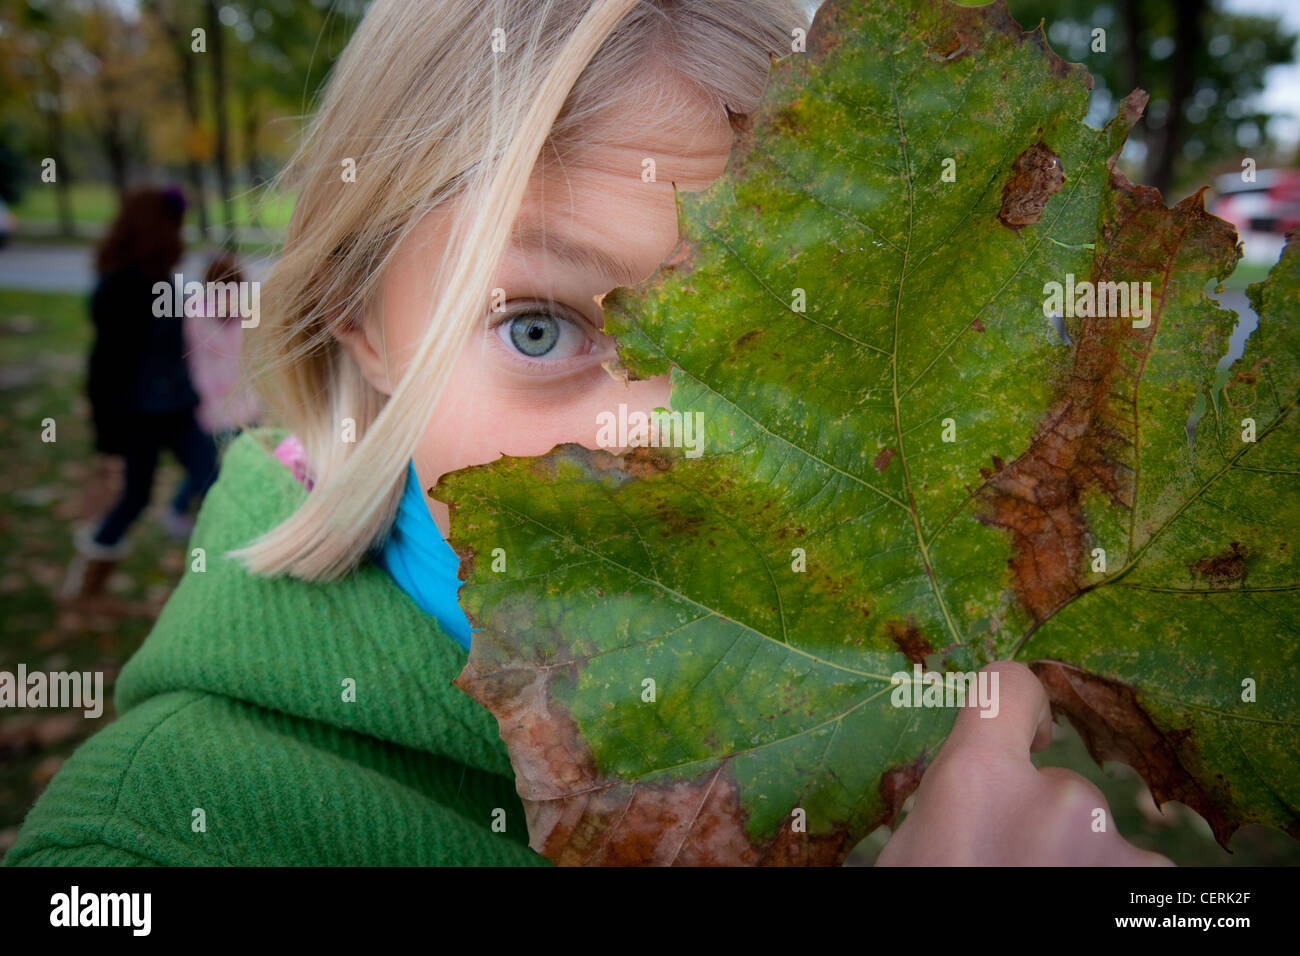 Ten year old girl peaking from behind a large leaf. - Stock Image